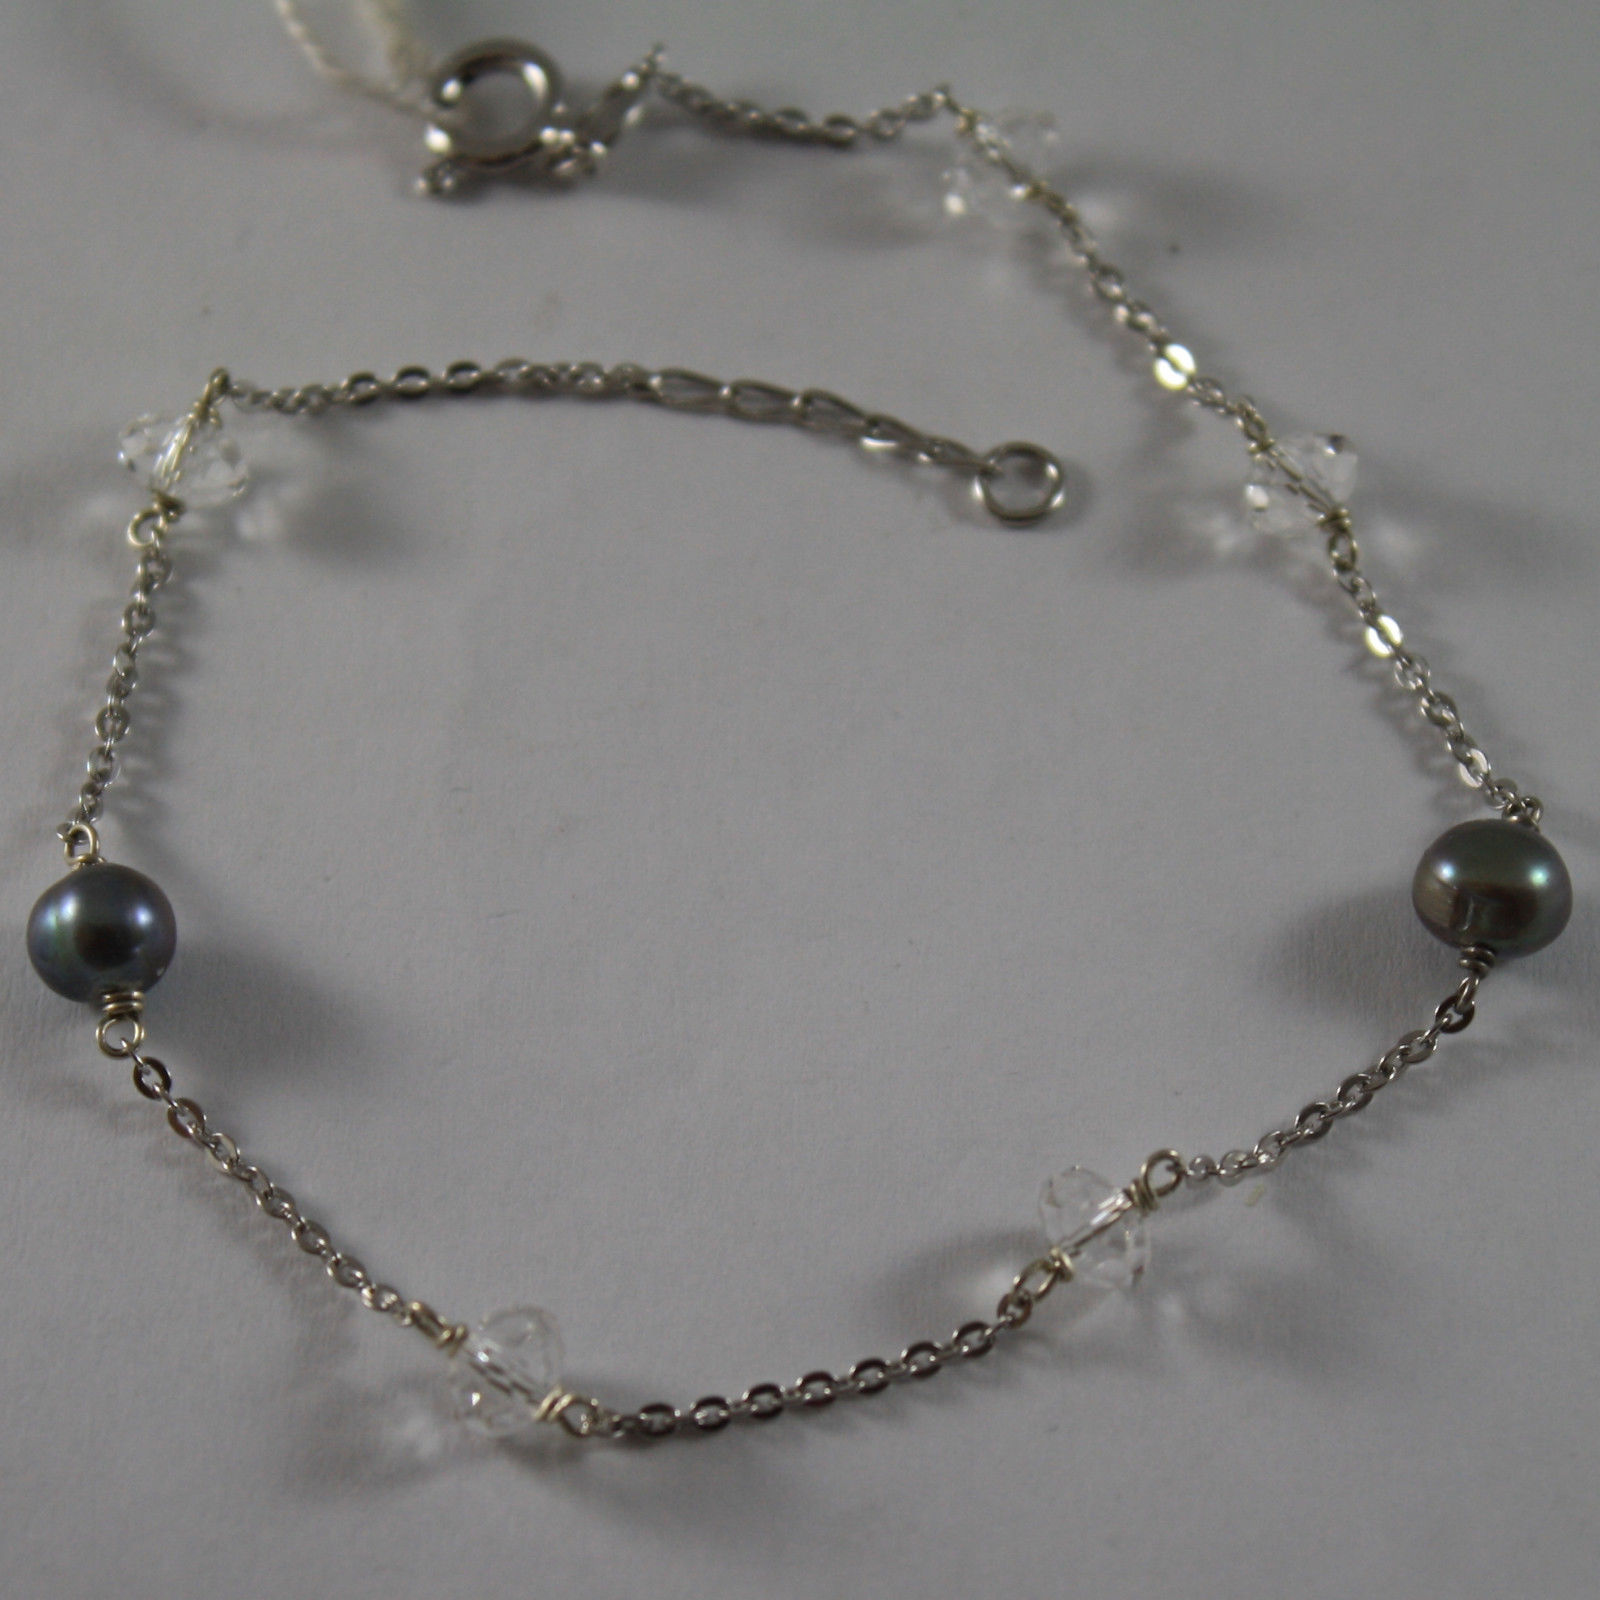 .925 RHODIUM SILVER BRACELET WITH GRAY PEARLS AND TRANSPARENT CRISTAL